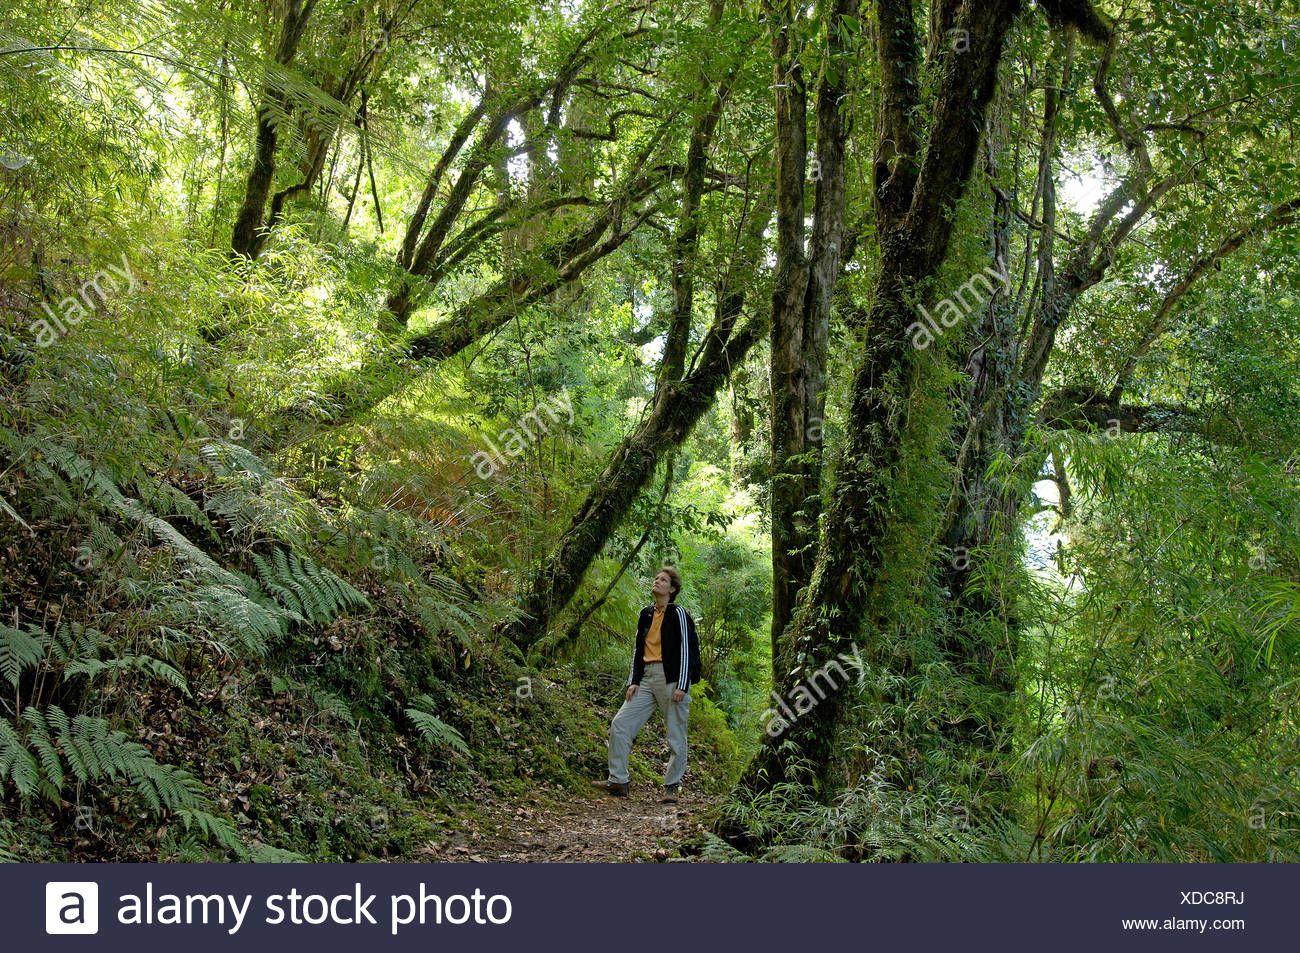 woman way wood forest excessively green walking hiking trekking Puyuhuapi Aisen Patagonia Chile - Stock Image